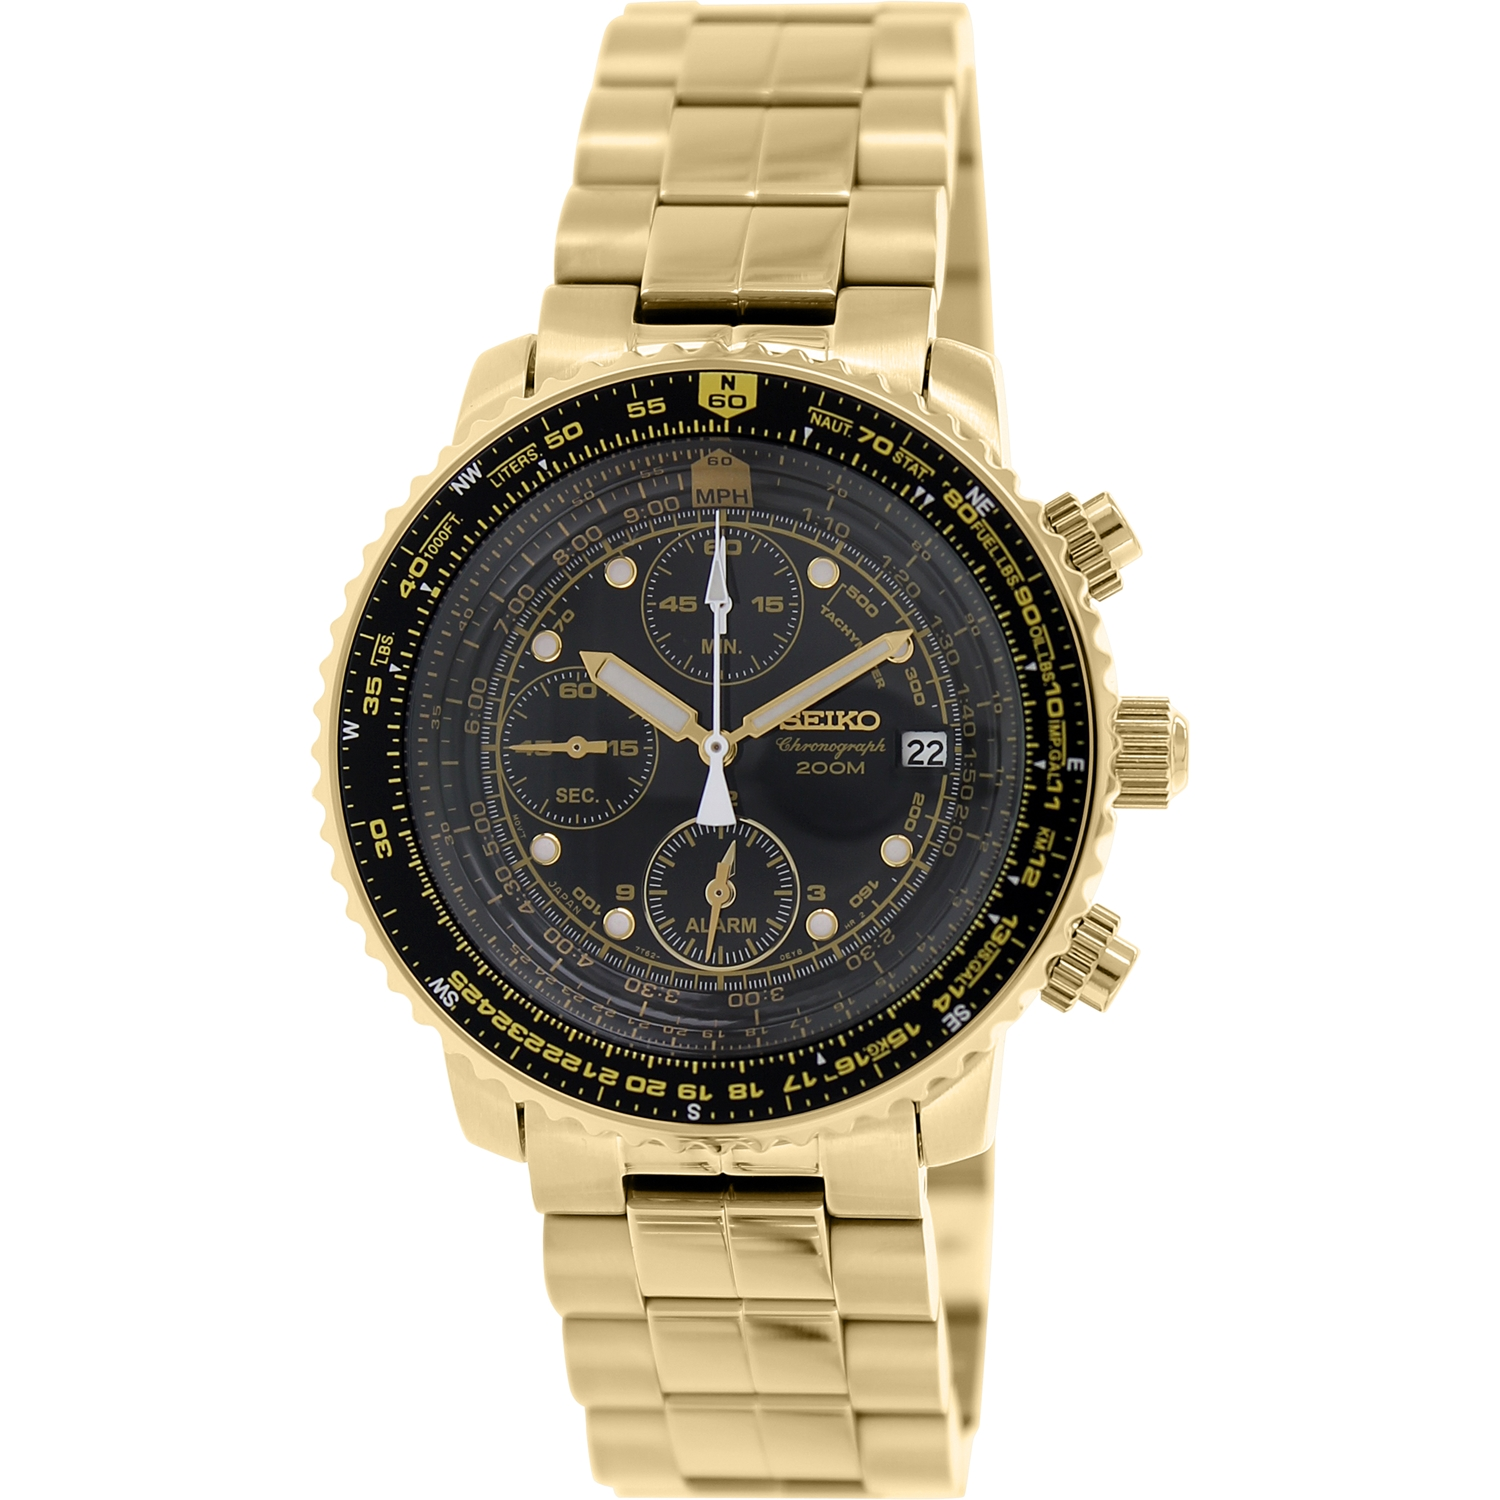 Seiko Men's SNA414 Gold Stainless-Steel Quartz Dress Watch